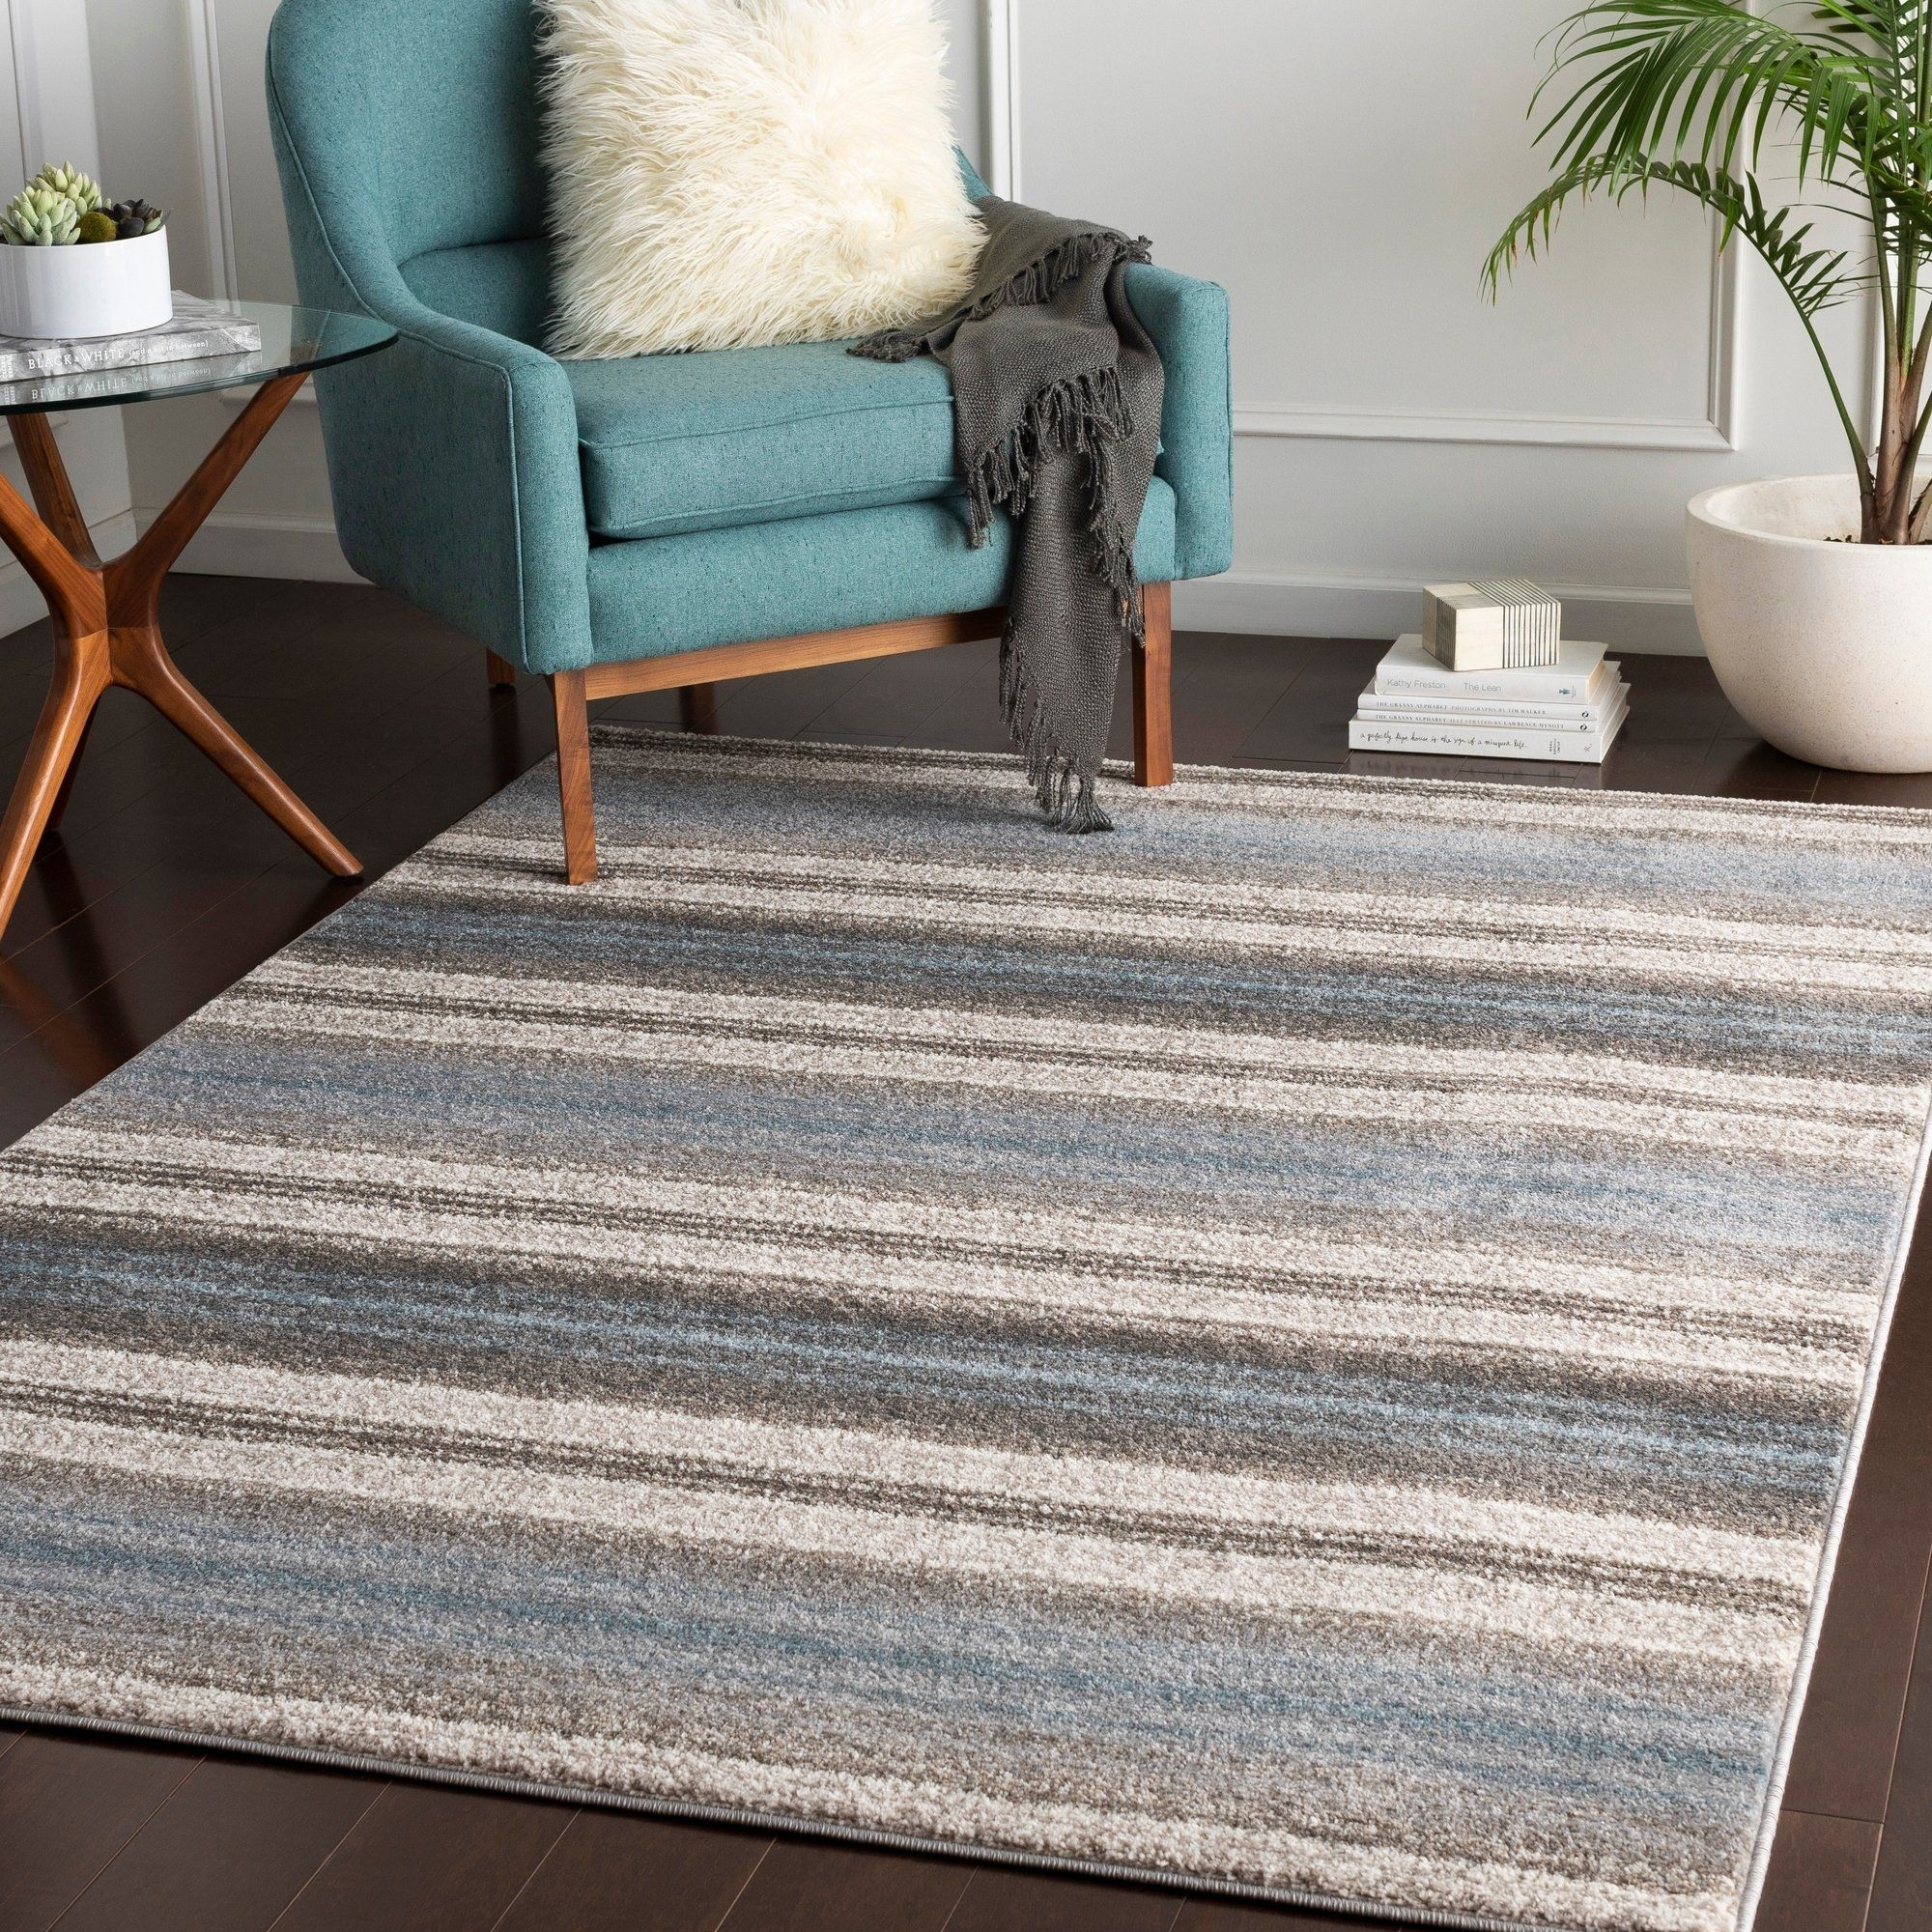 Parsifal Blue Casual Stripes Area Rug 7 10 X 10 3 Rugs Online Home Decor Stores Area Rugs